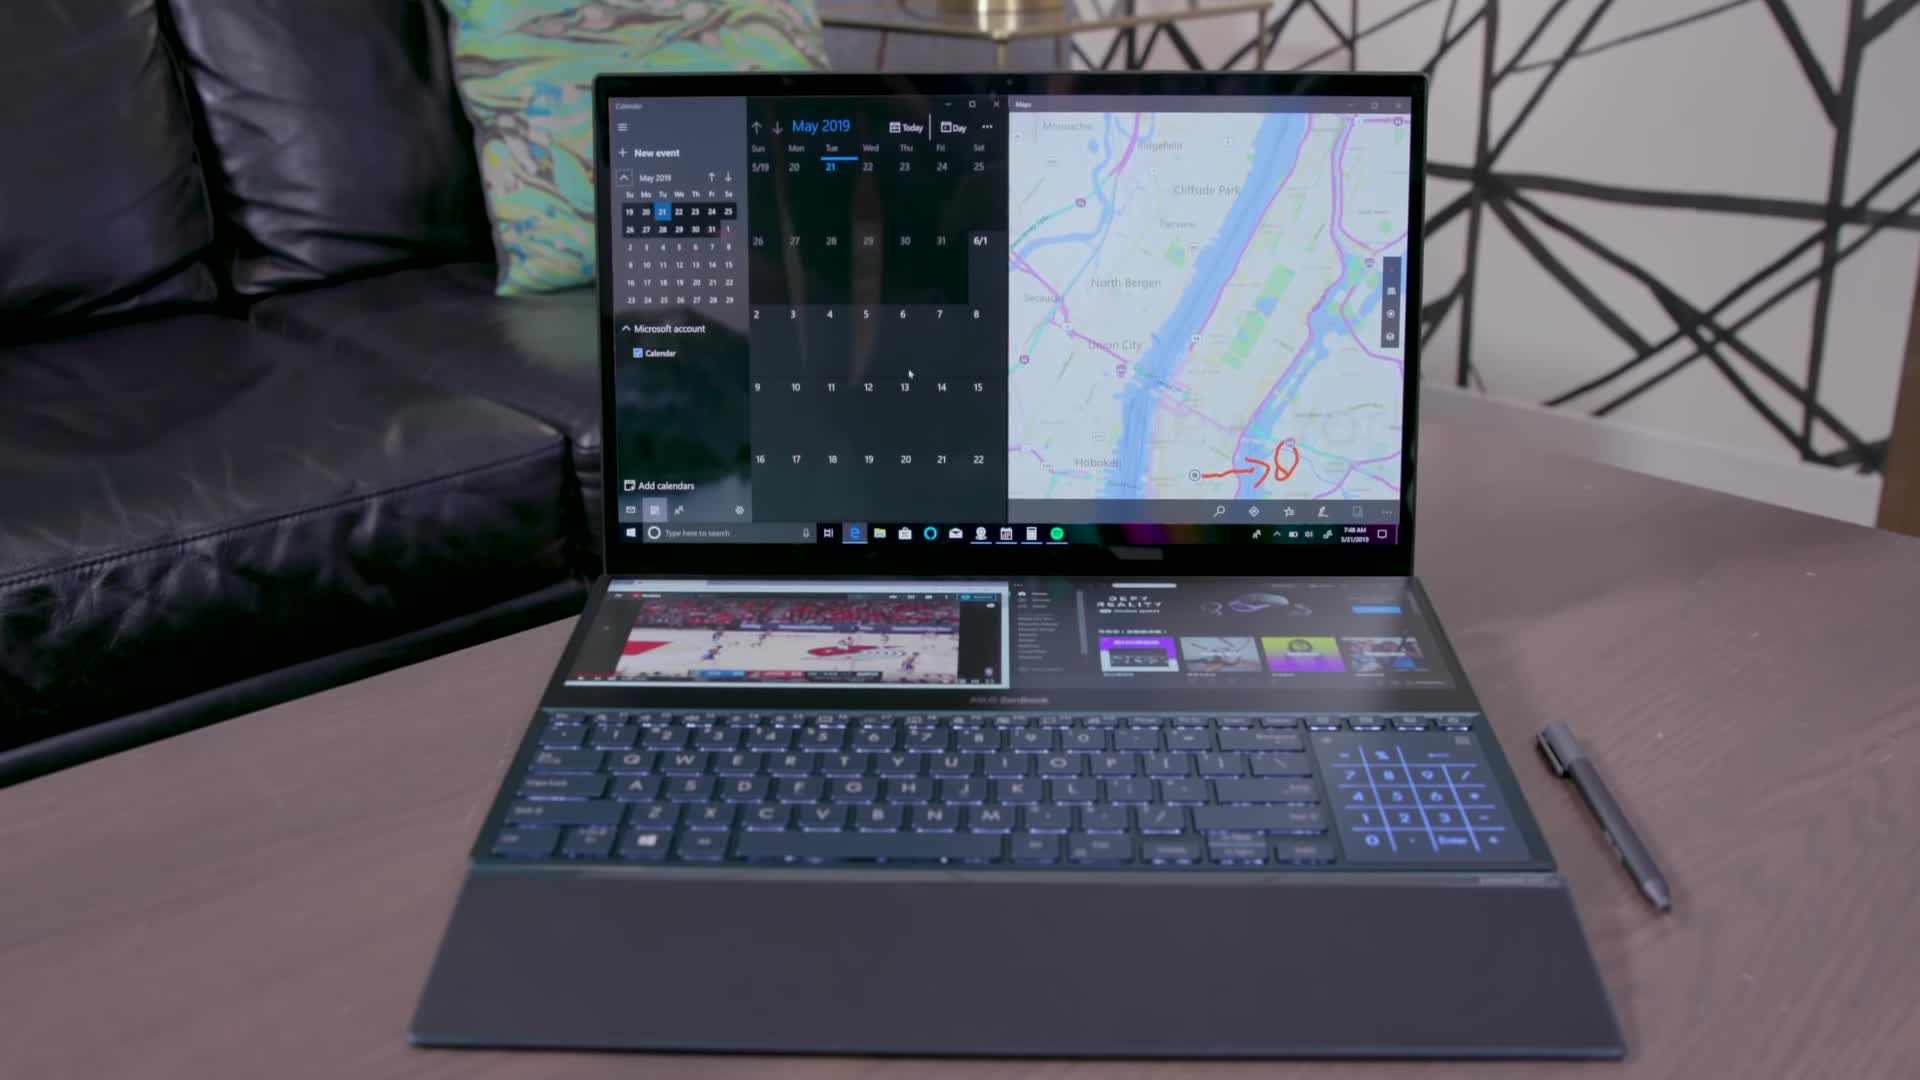 2019, asus, computex, computex2019, consumer tech, duo, engadget, gadgets, gear, hands-on, in-keyboard, laptop, pro, science, science & technology, tech, technology, zenbook, zenbook pro, ASUS Zenbook Pro Duo Hands-On at Computex 2019 GIFs